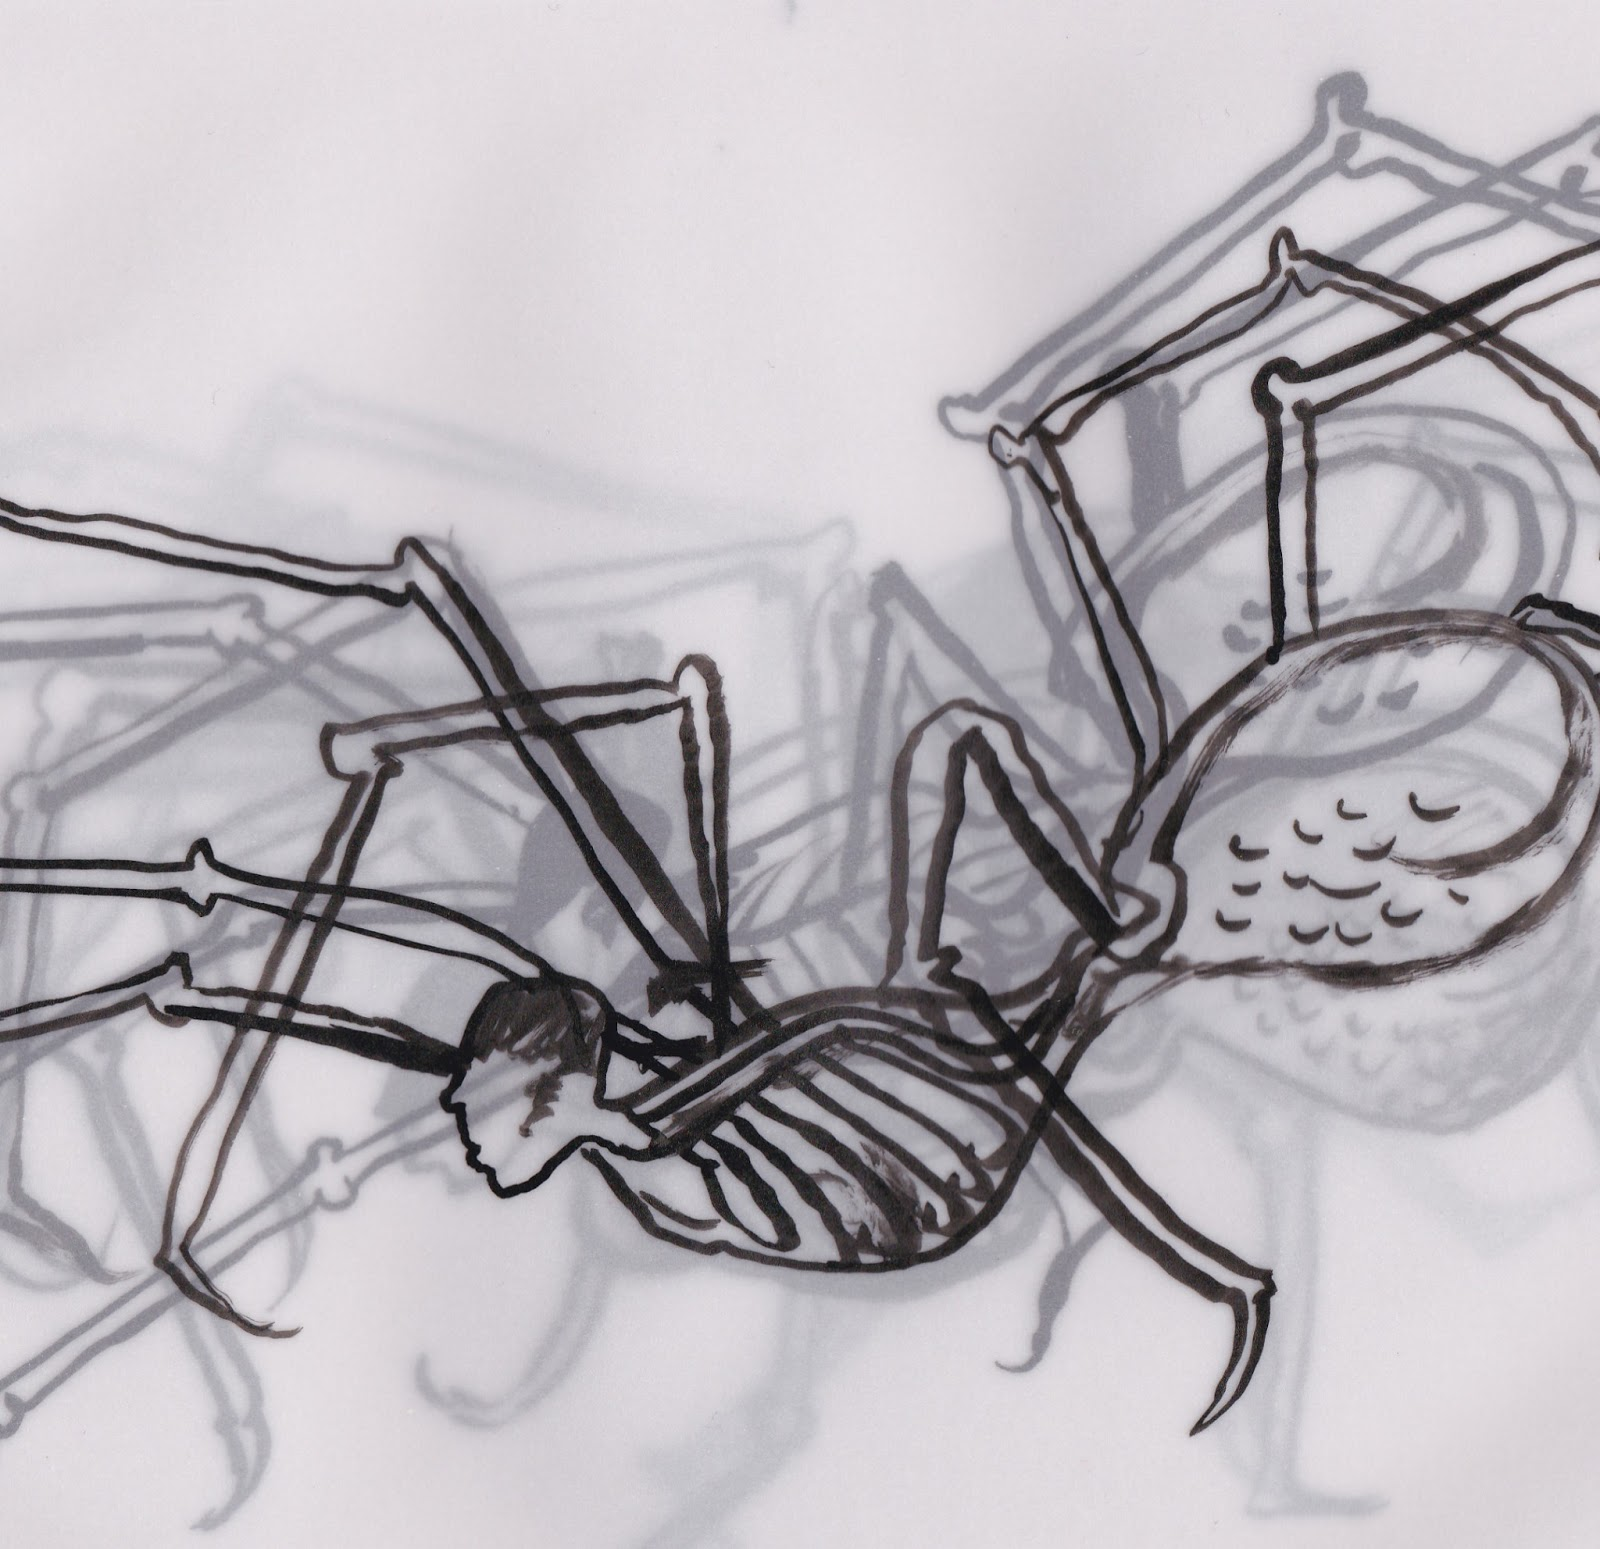 Drawn spider tracing On in Wings